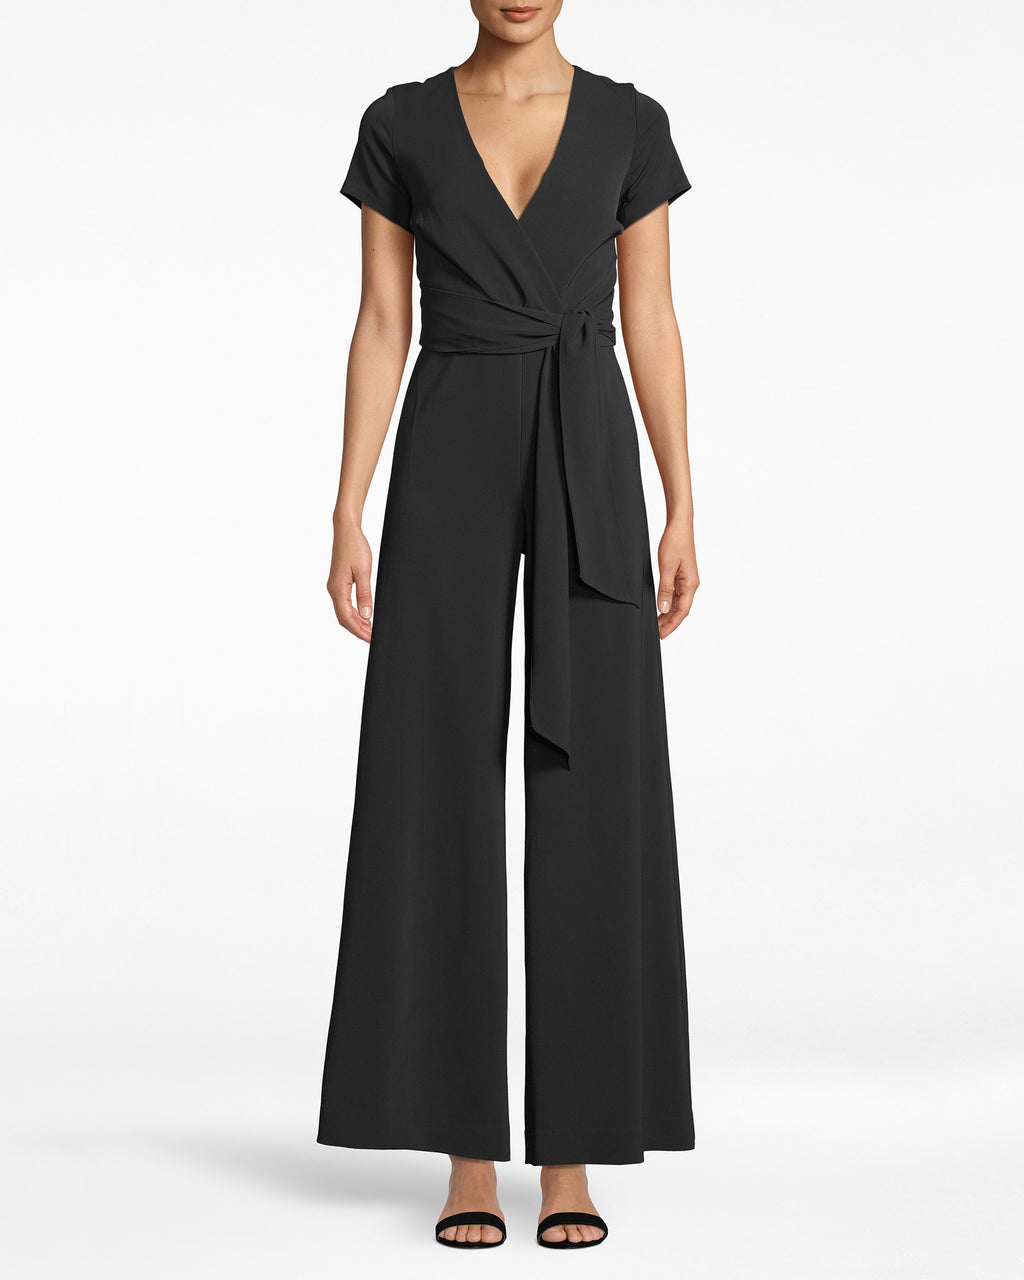 CF20160 - TIE FRONT JUMPSUIT - bottoms - pants - A PARTY IS CALLING, AND THIS JUMPSUIT ANSWERED. IT'S TAILORED WITH A TIE FRONT AND A HIDDEN FRONT ZIPPER AND BUTTON. THE V NECK SHOWS OFF JUST THE RIGHT AMOUNT OF SKIN, WHILE THE ANKLE SKIMMING WIDE LEGS FLARE OUT JUST THE RIGHT AMOUNT.